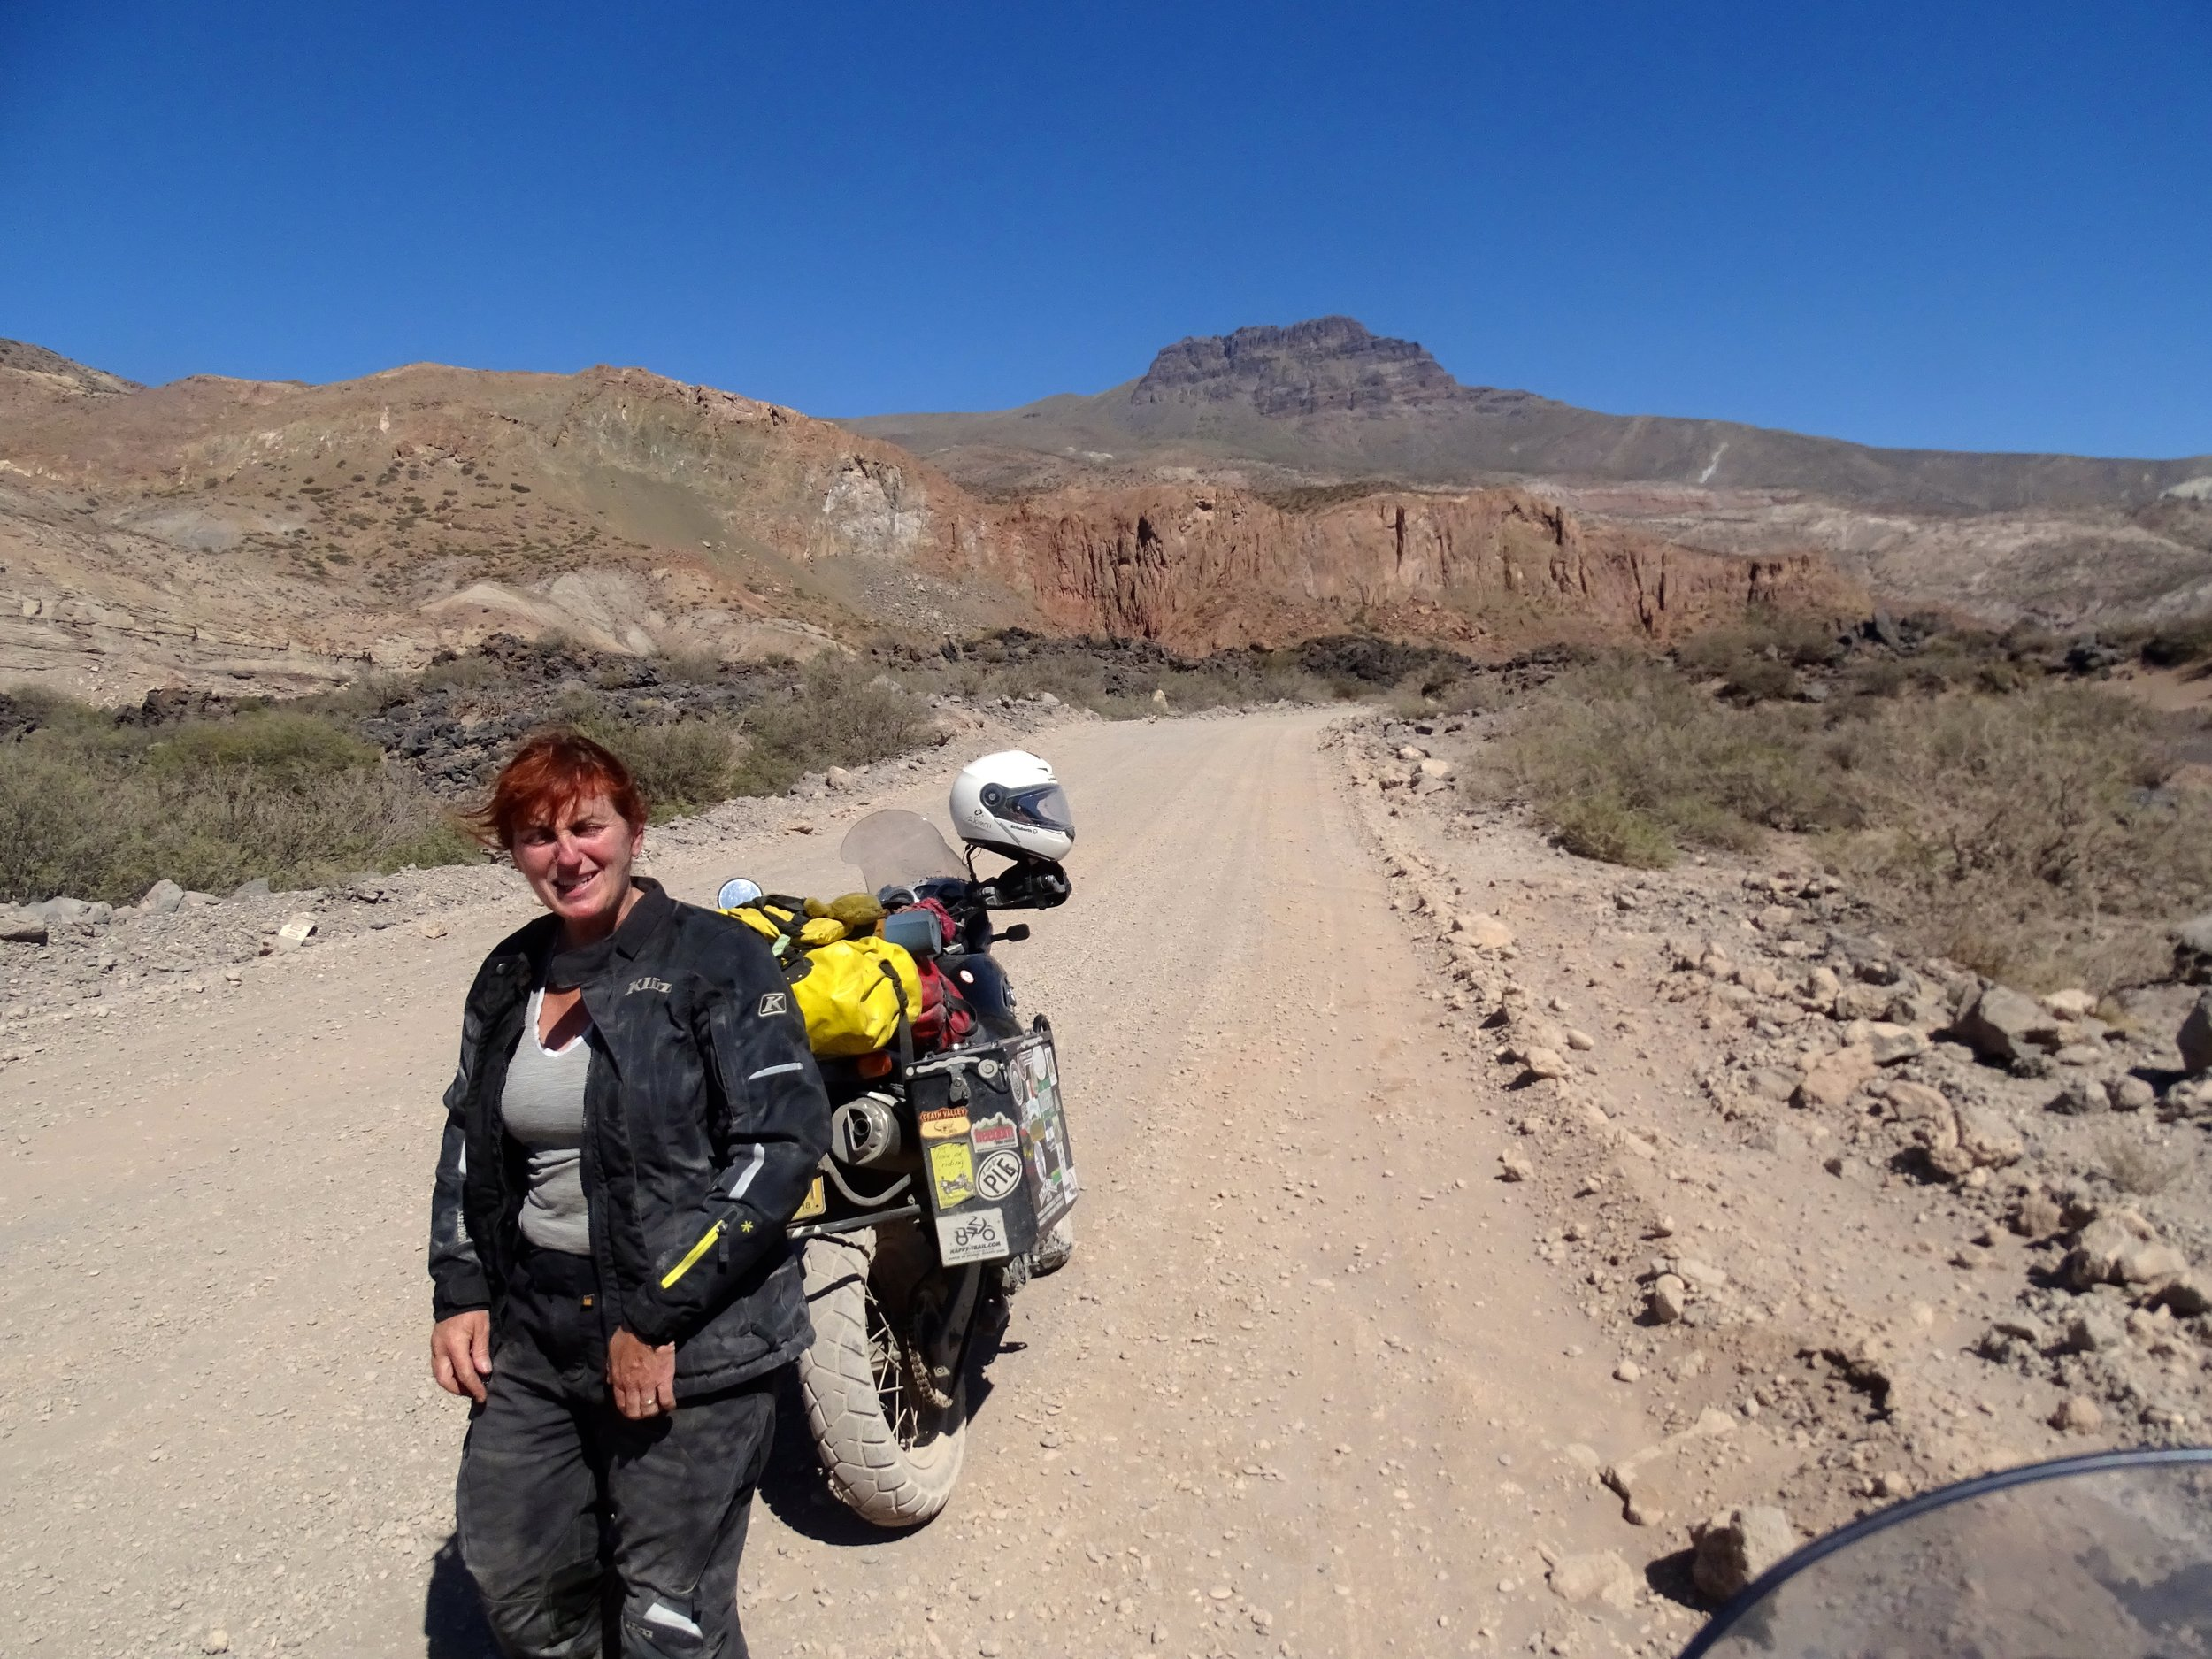 Riding to Mendoza was HOT! Notice the LACK of smile on my face. Ha!